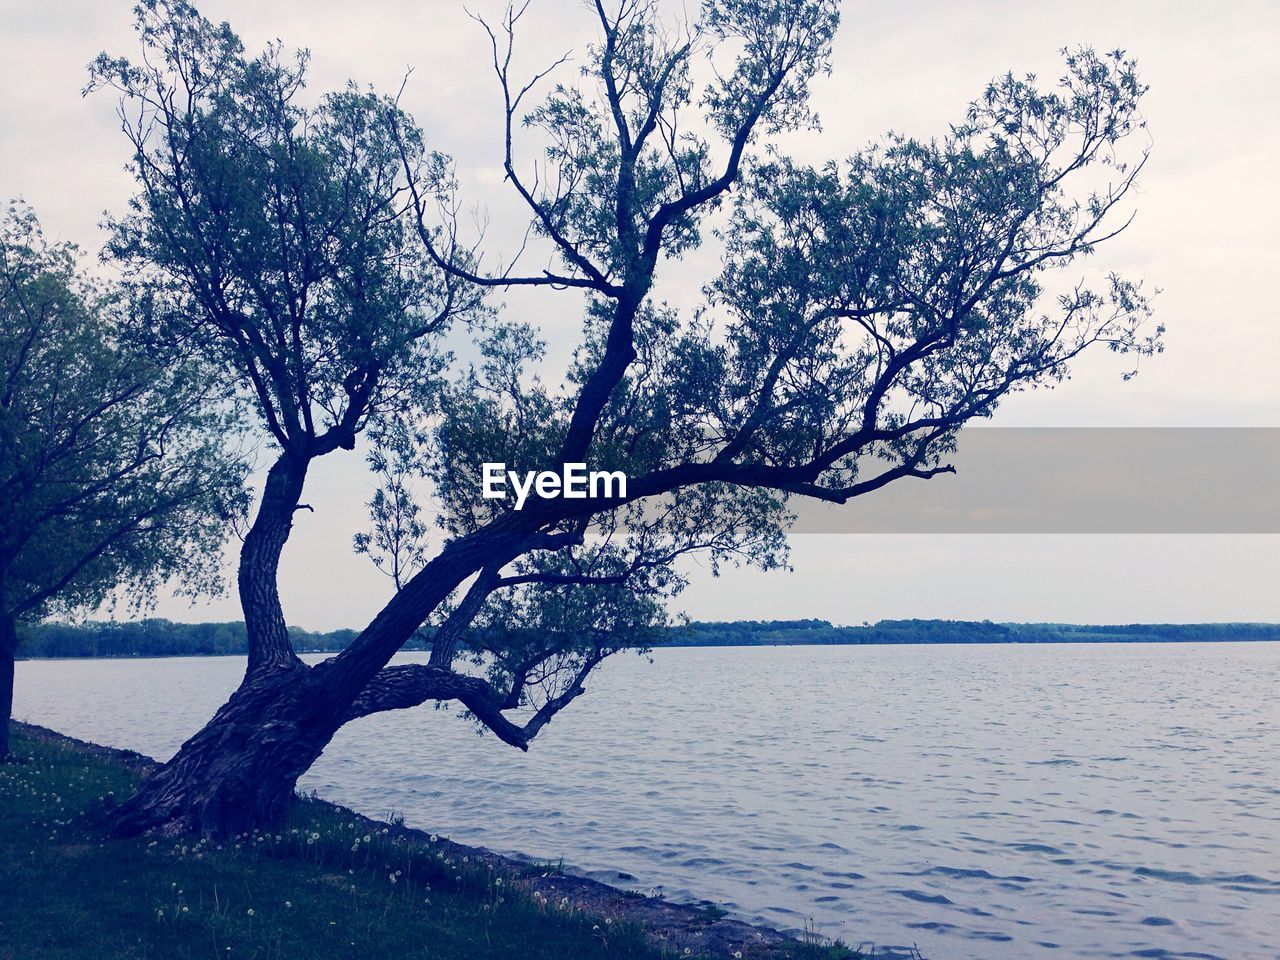 tree, tranquility, nature, water, sky, sea, beauty in nature, tranquil scene, scenics, outdoors, no people, branch, horizon over water, day, lone